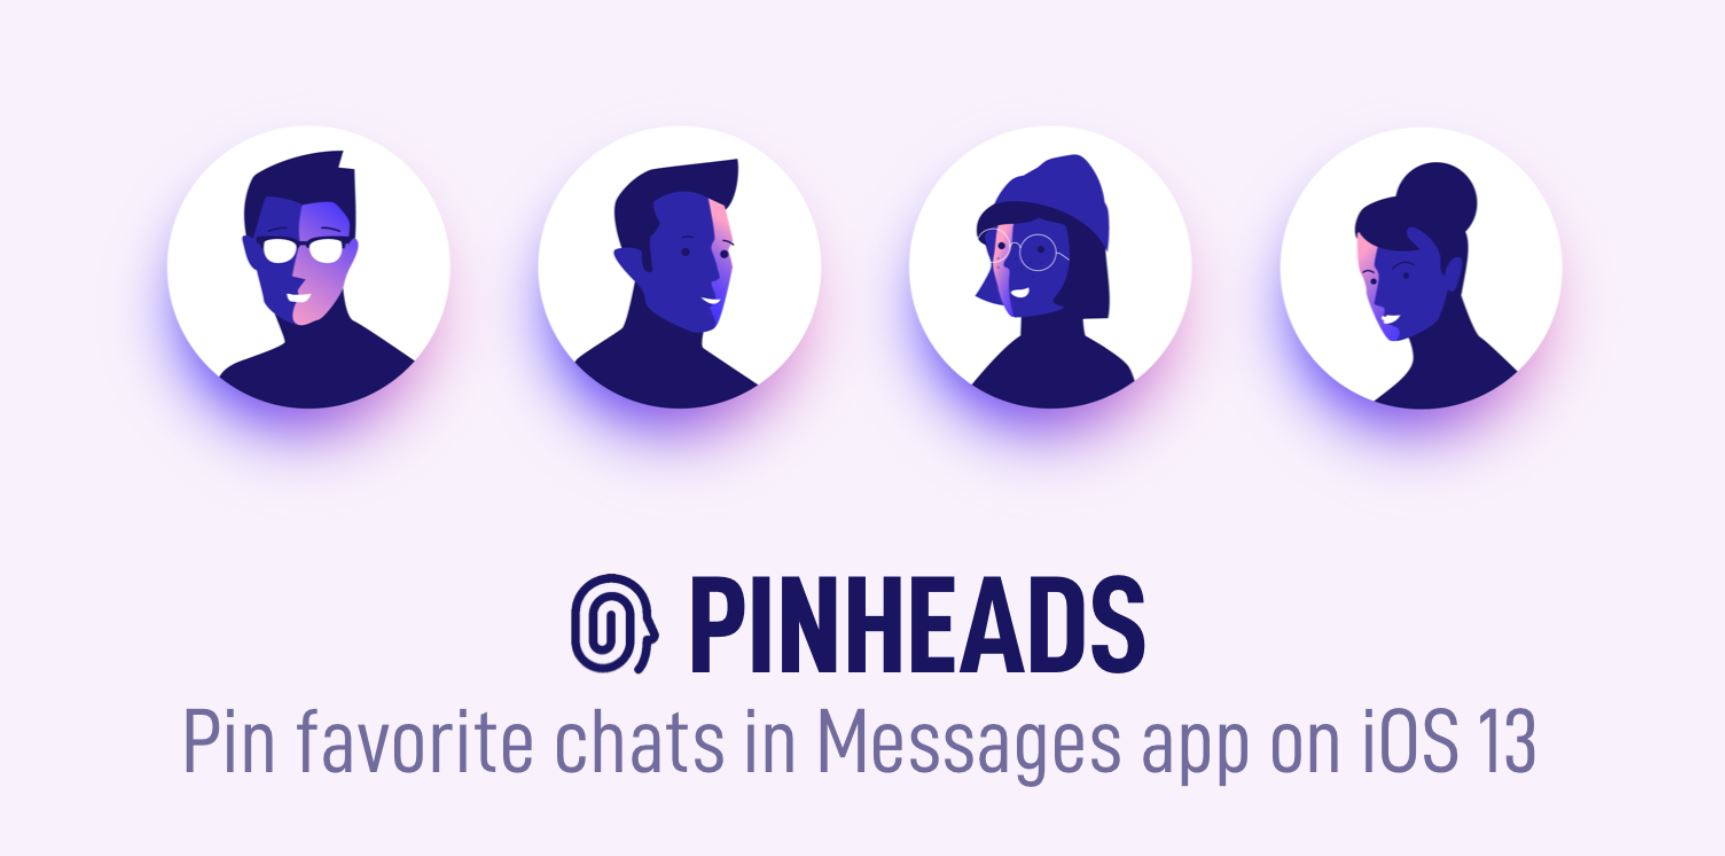 pinheads-pin-chats-conversations-messages-app